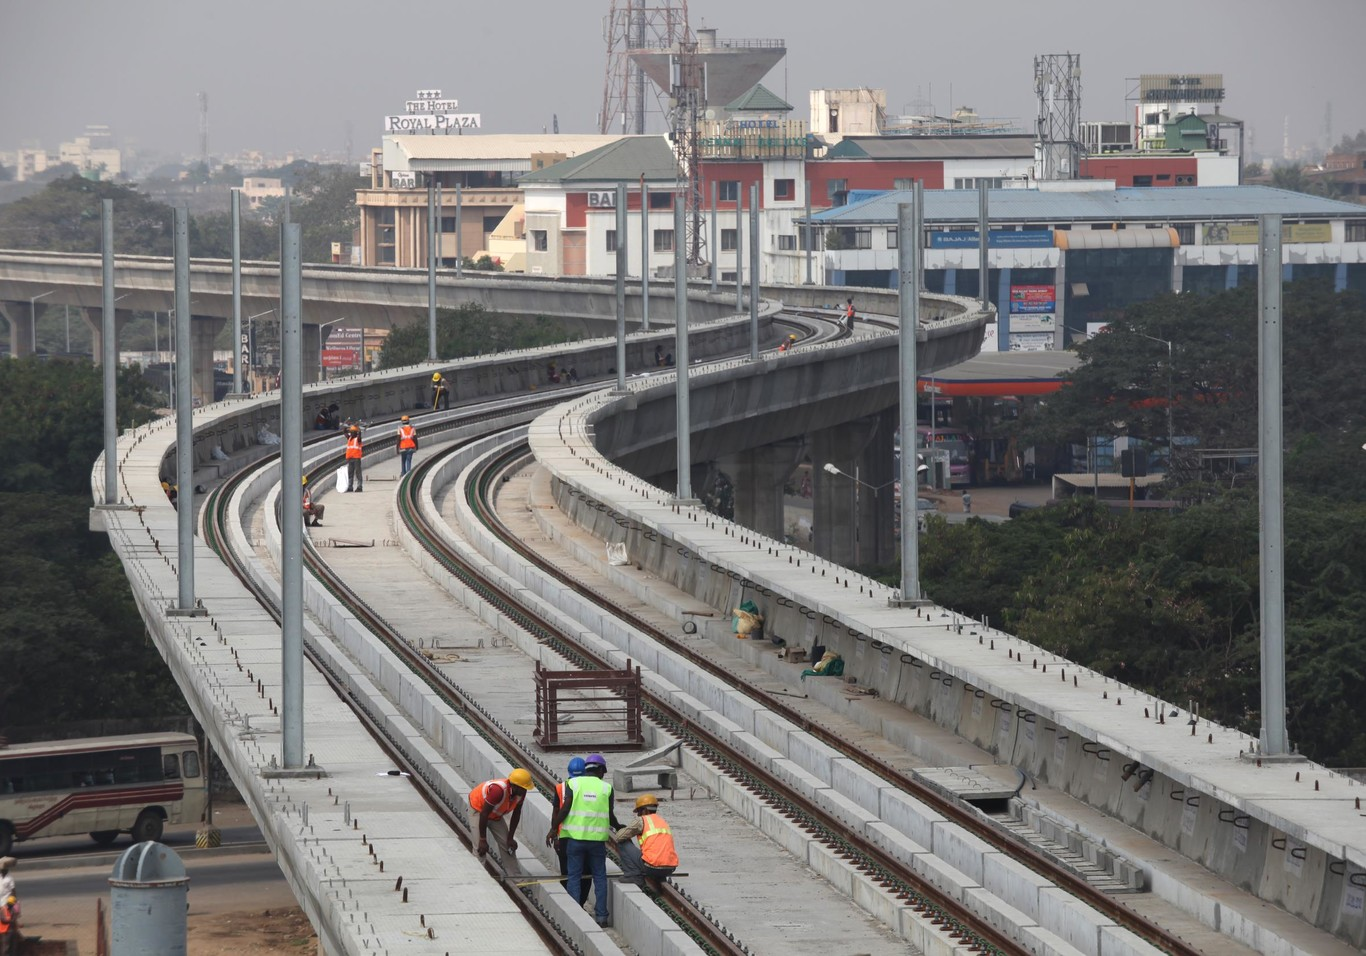 Track laying for the Chennai metro Infrastructure project. | Copyright/Ownership : Alstom Transport/ F. Christophoridès